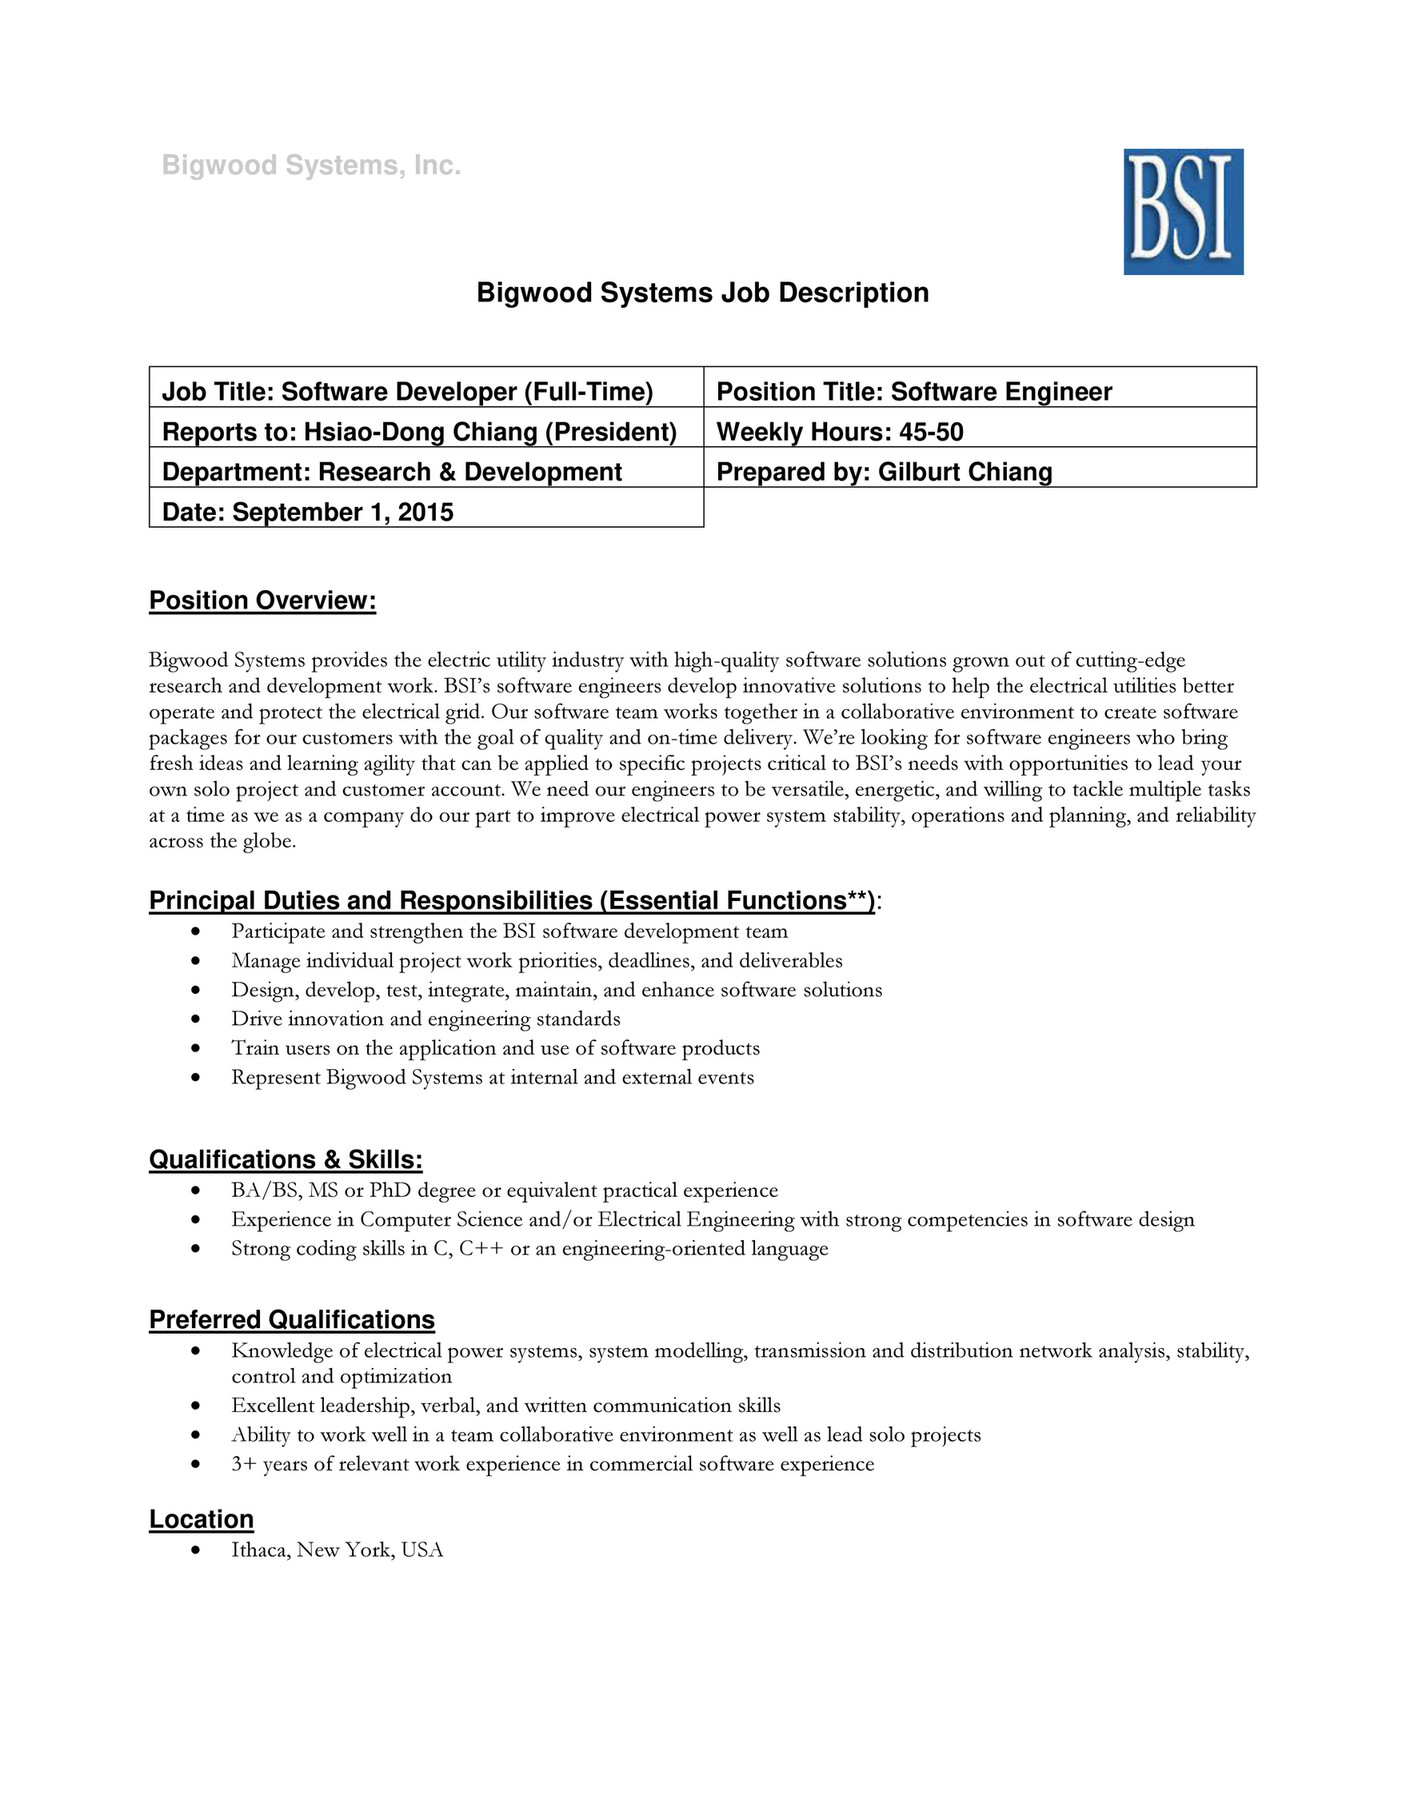 ithaca new york usa. Resume Example. Resume CV Cover Letter